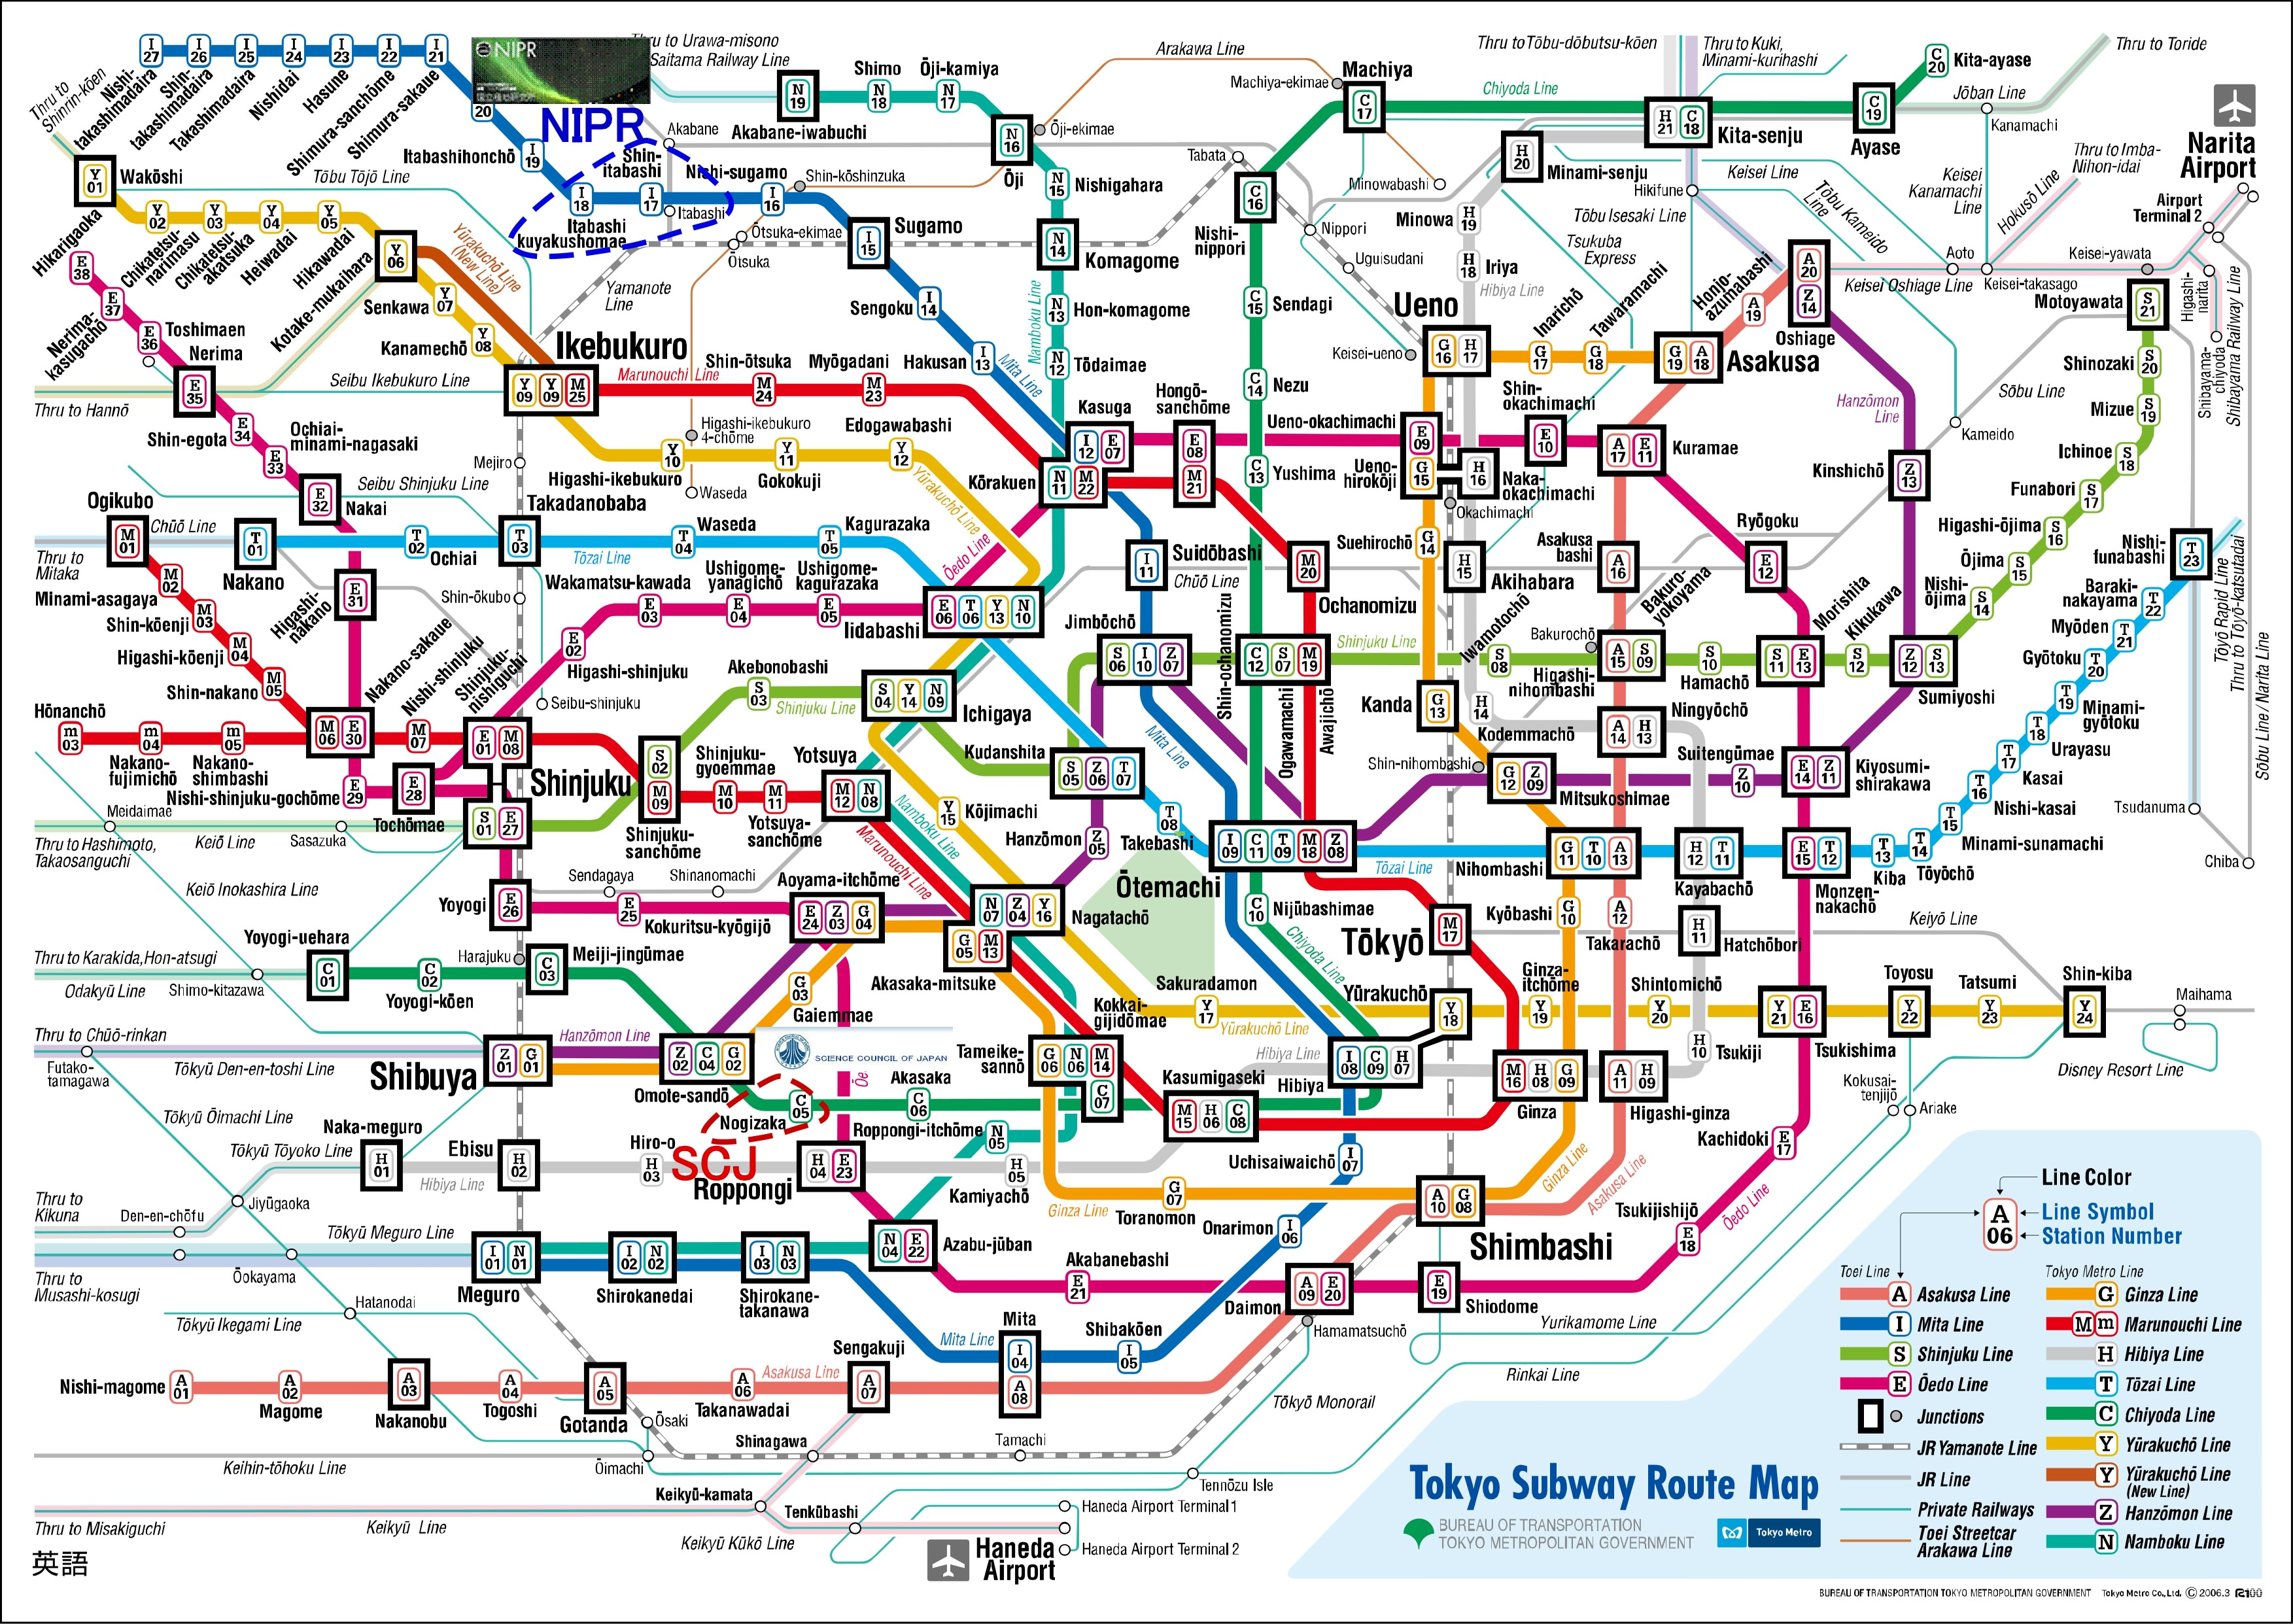 Tokyo-Subway-Route-Map